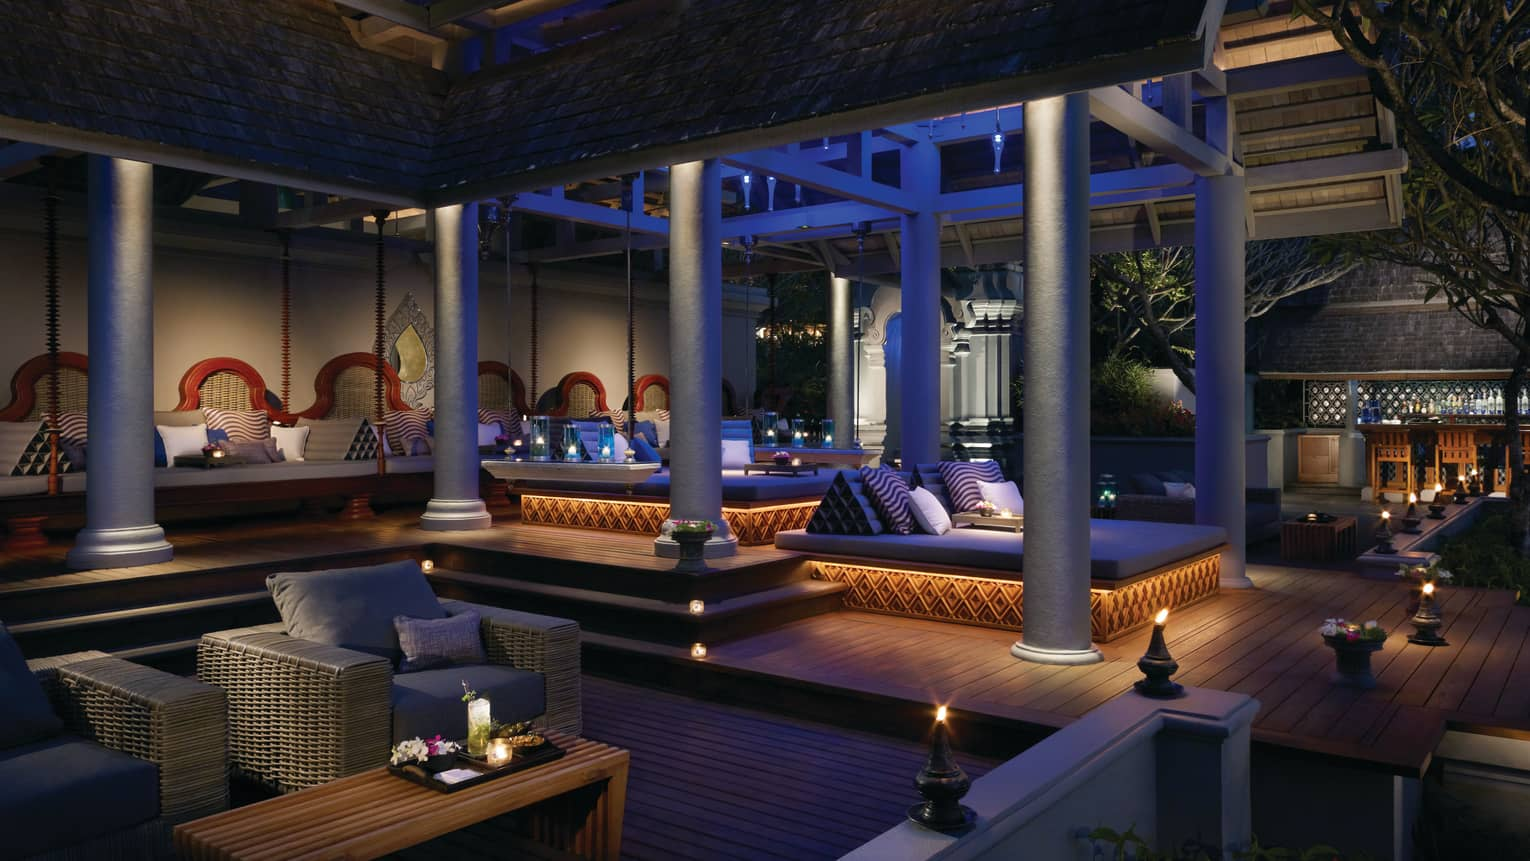 Ratree patio large wicker lounge sofas, chairs, small lanterns under white pillars at night